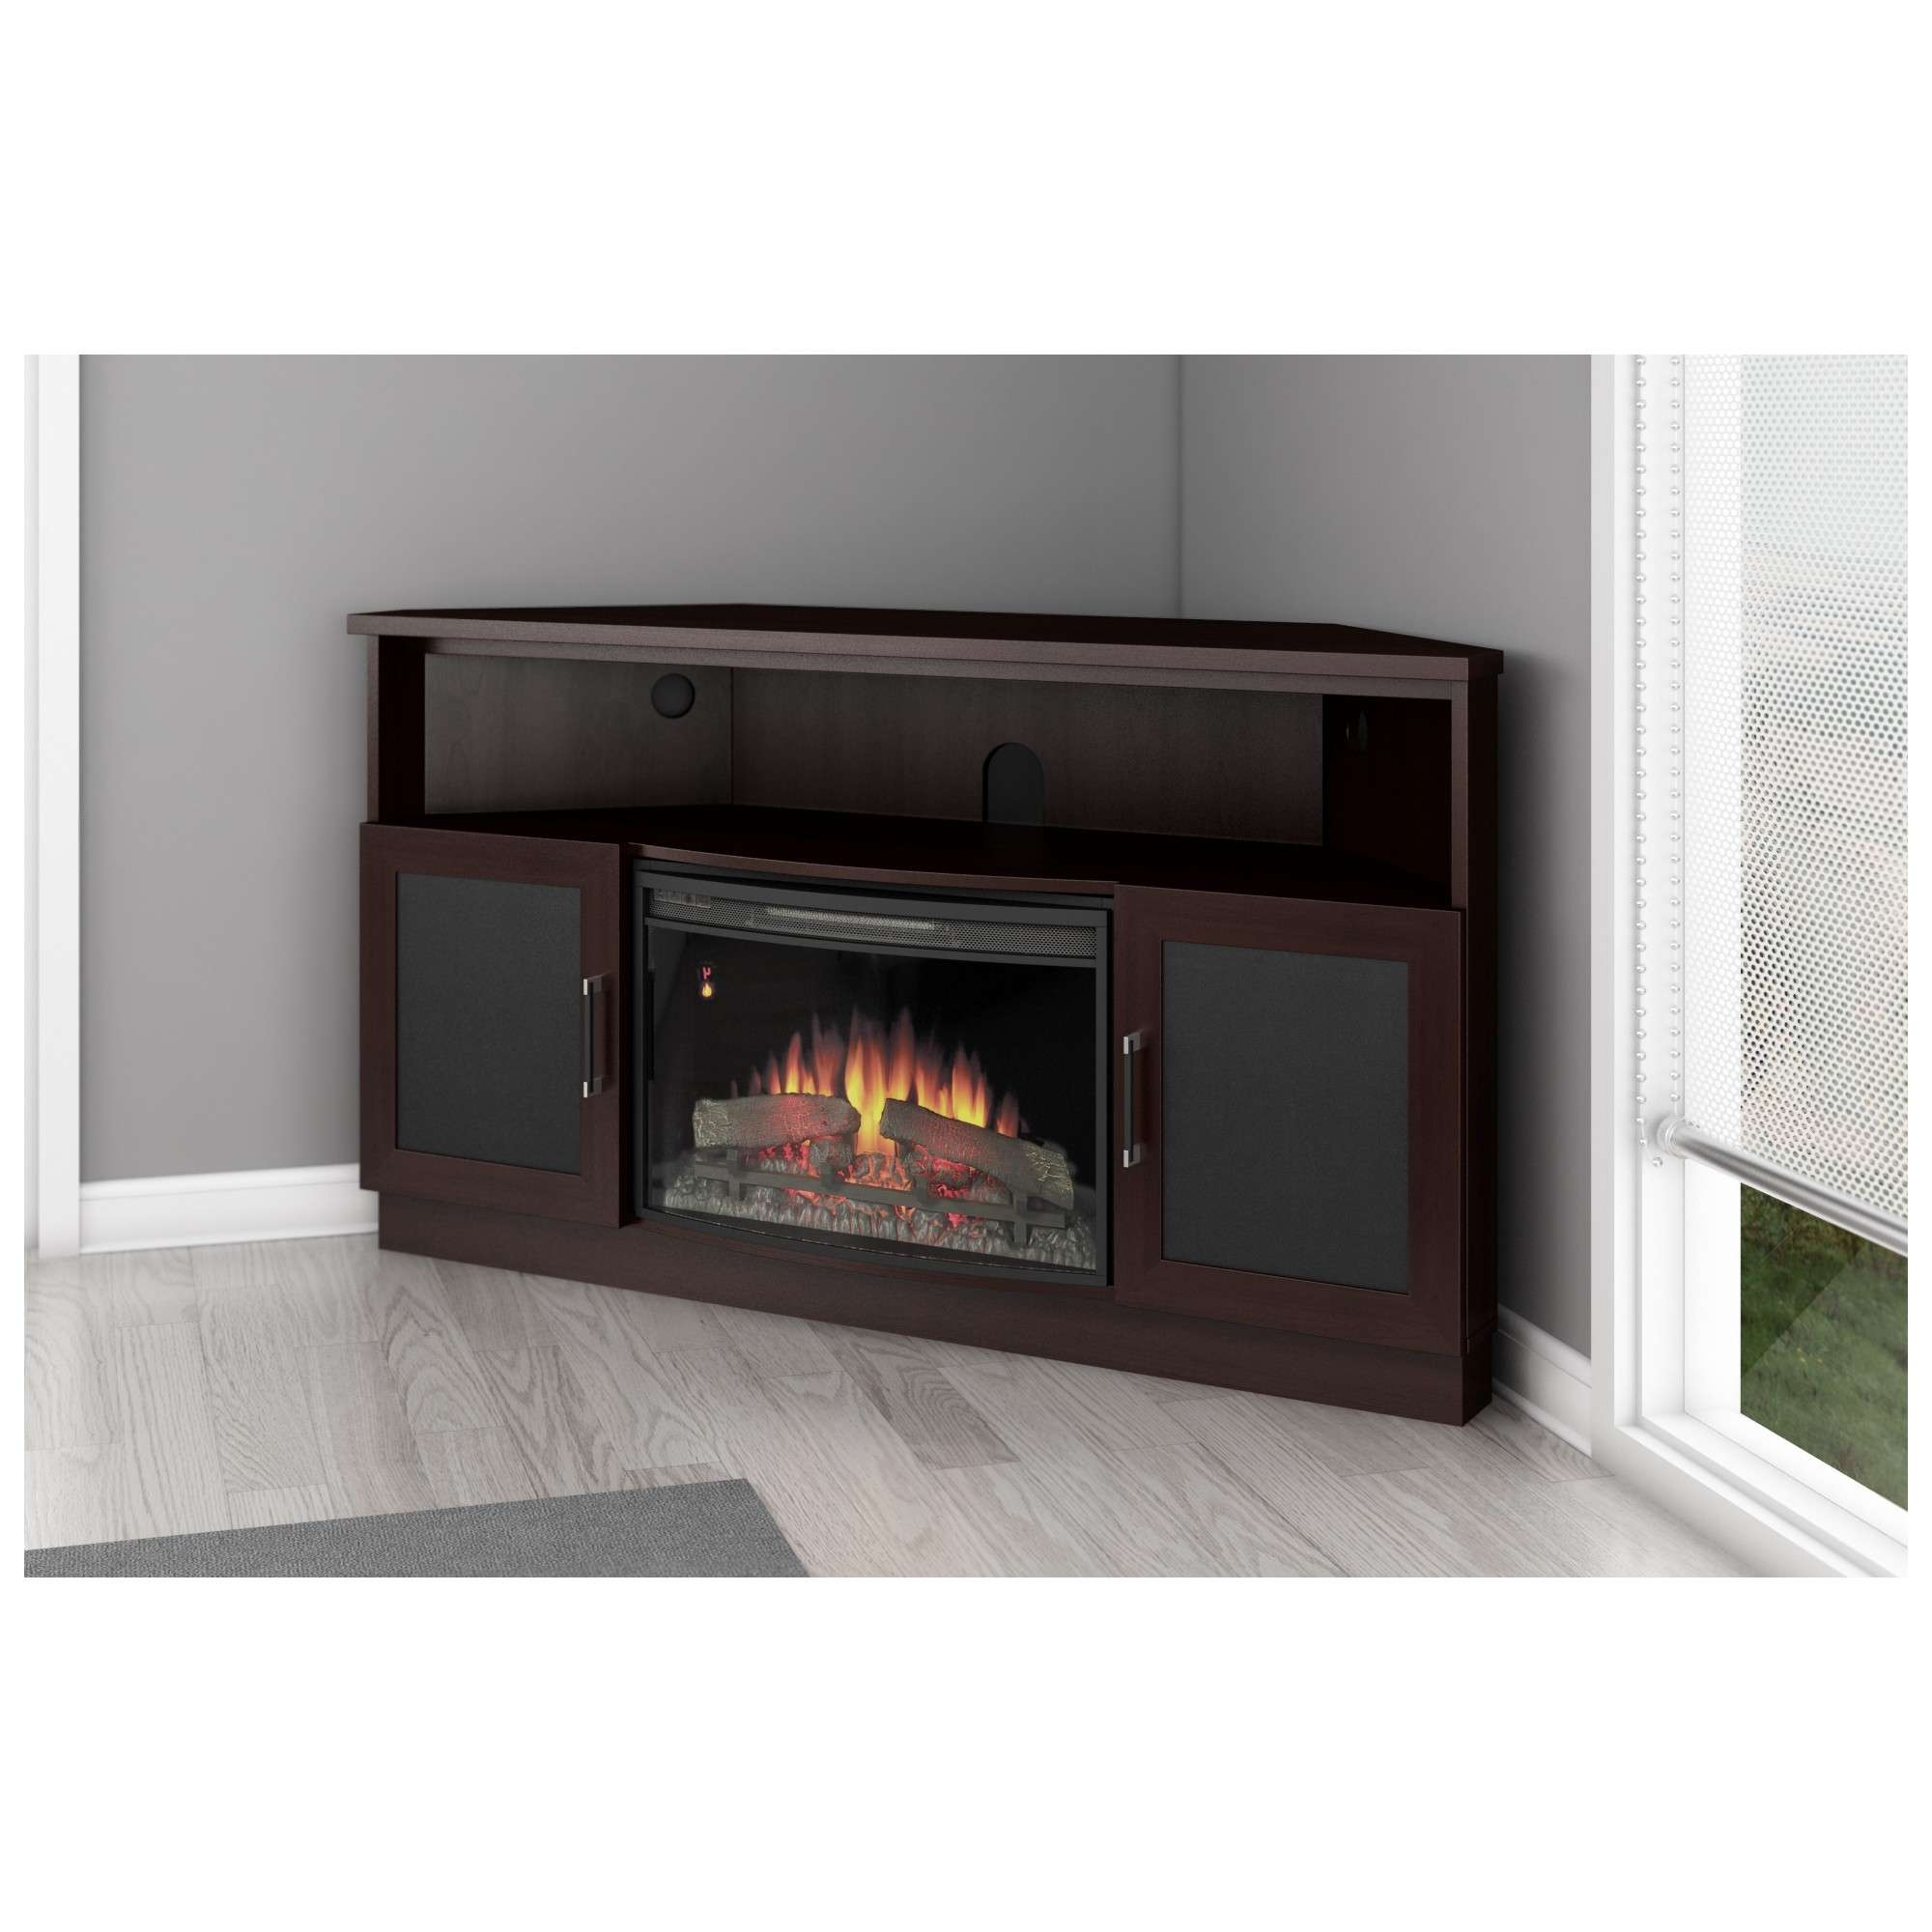 Oak 50 Inch Corner Tv Stands Tags : 43 Outstanding 50 Inch Corner With Regard To 50 Inch Corner Tv Cabinets (View 19 of 20)